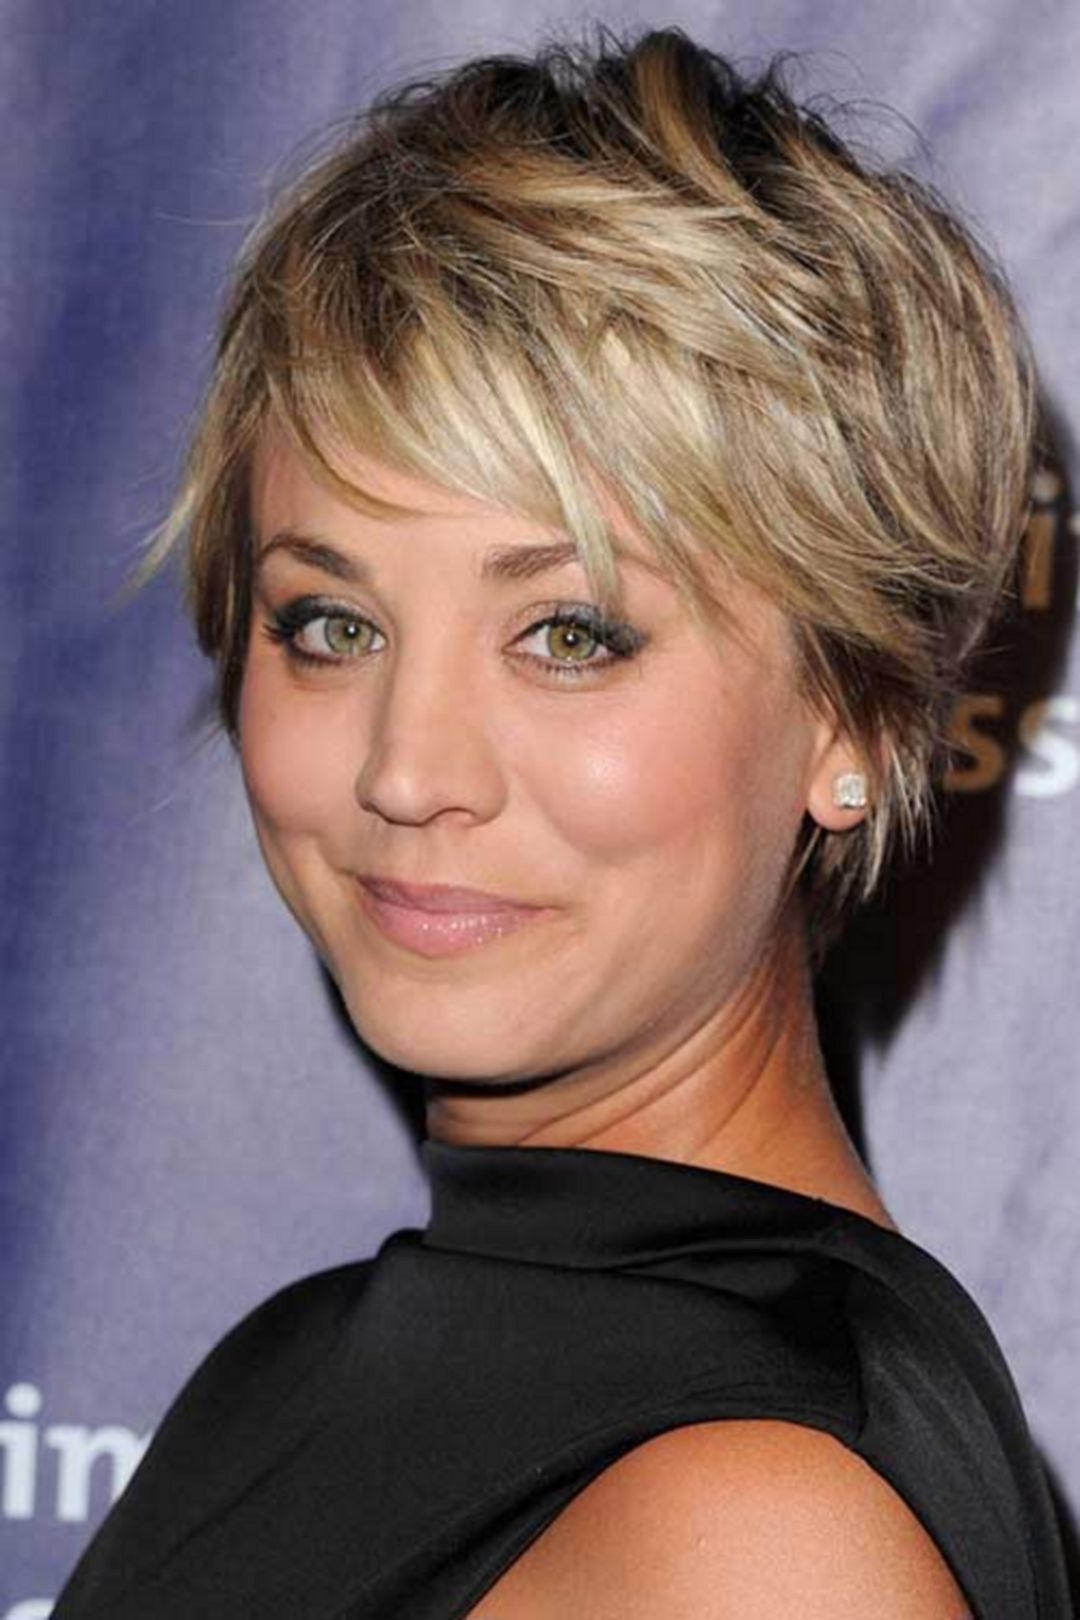 awesome short hair cuts for beautiful women hairstyles woman